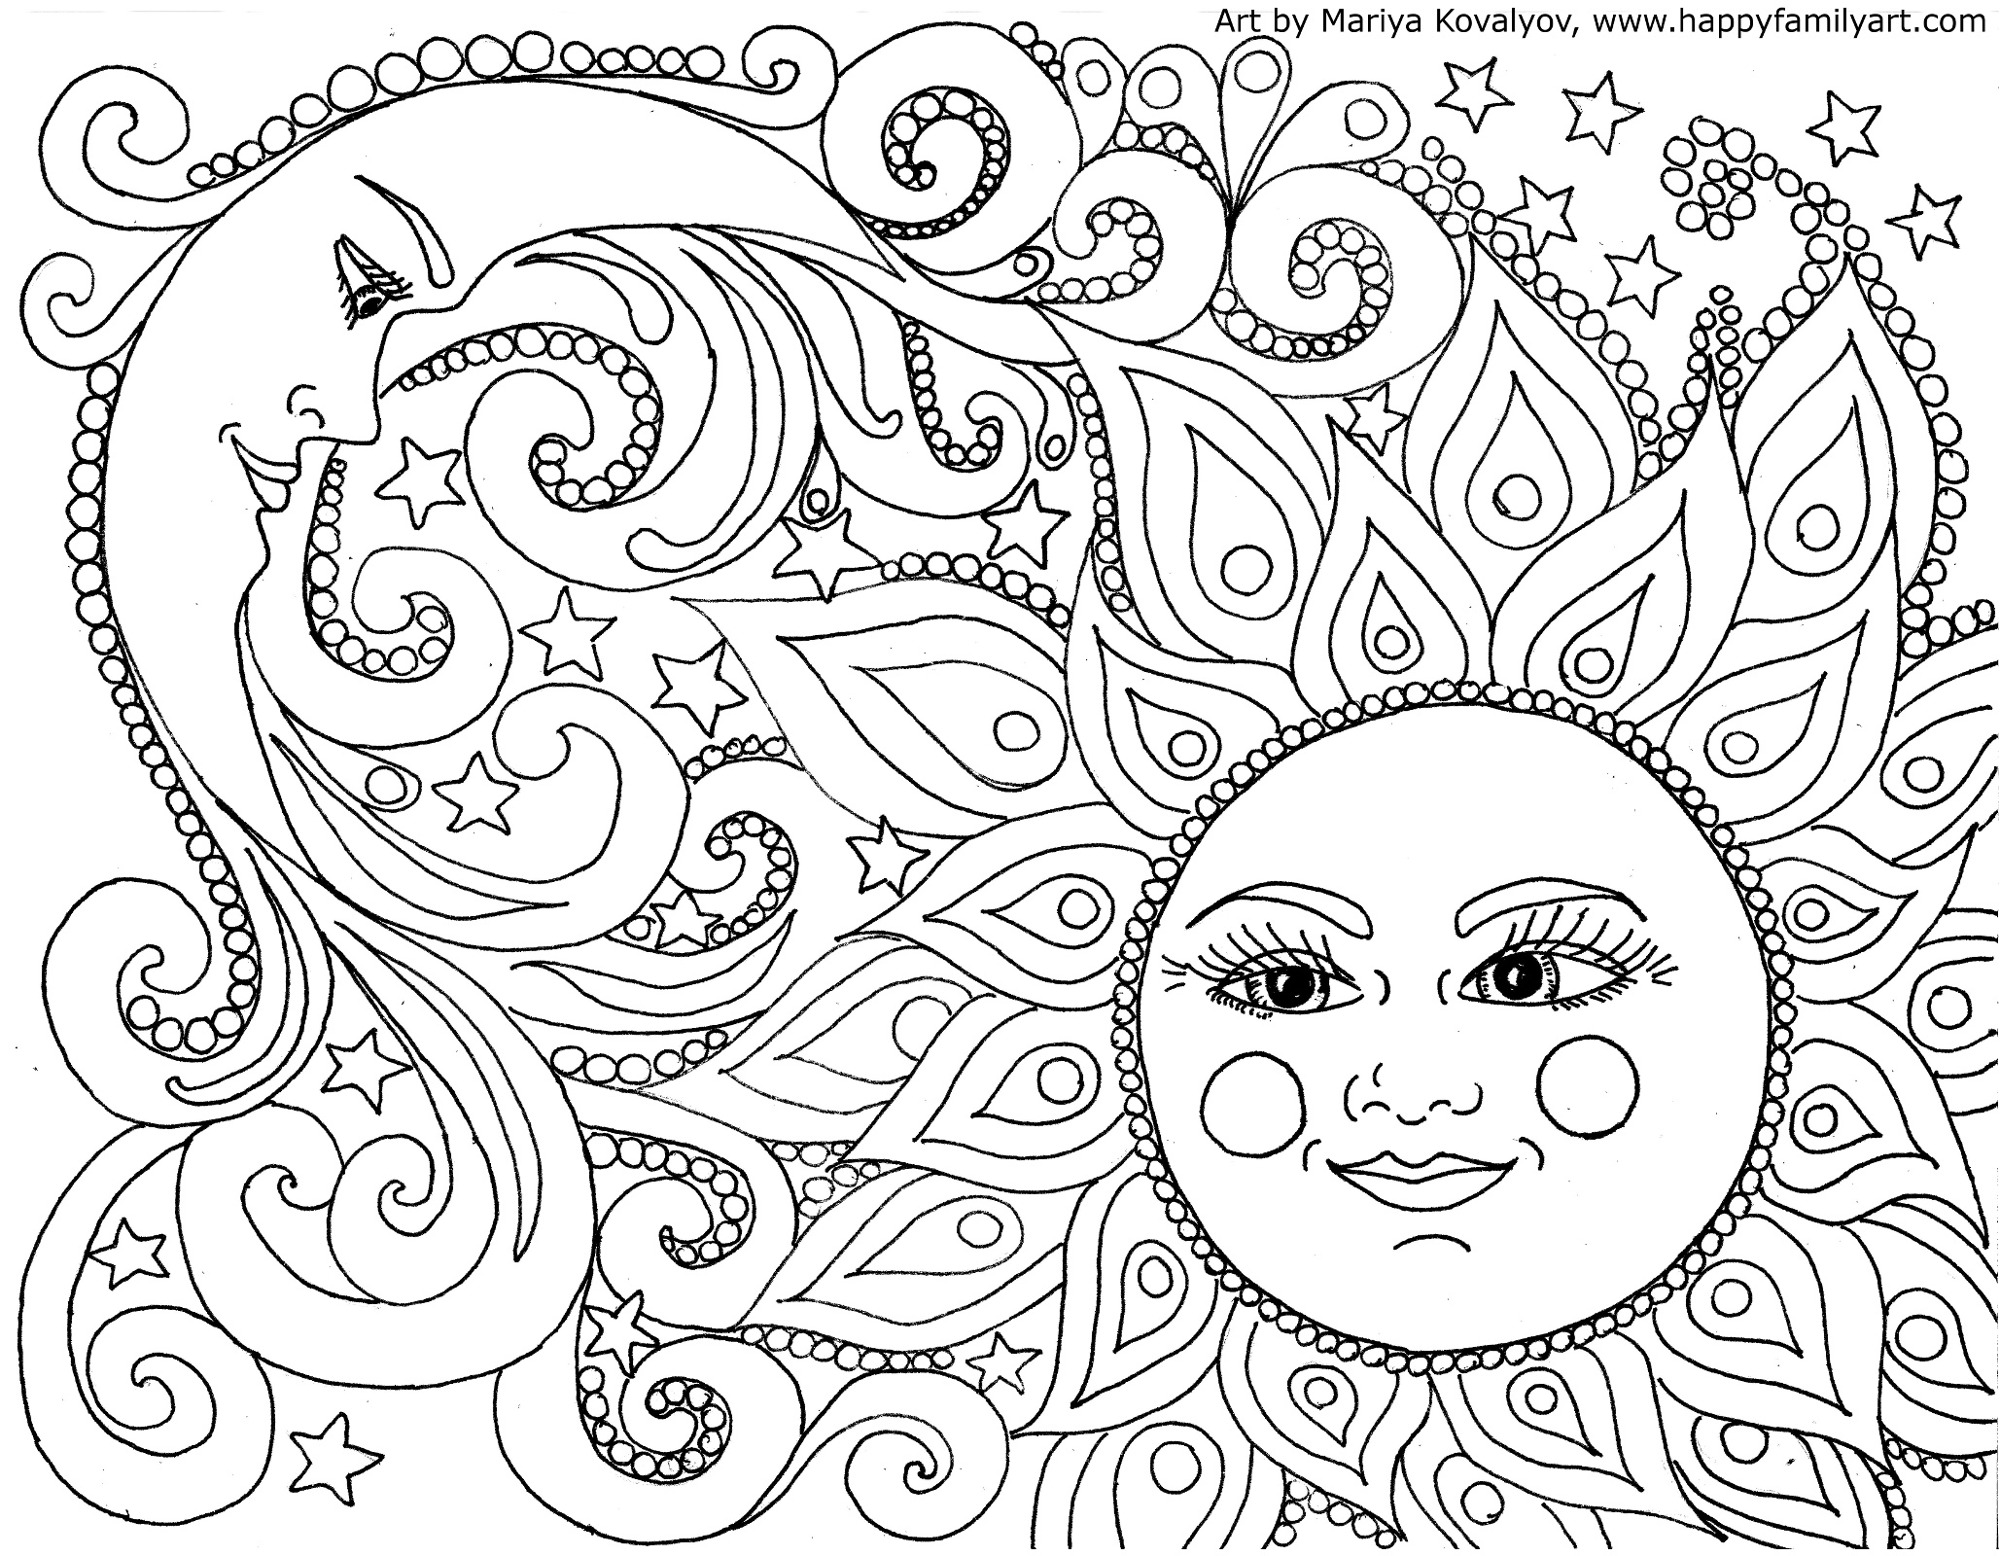 - Happy Family Art - Original And Fun Coloring Pages